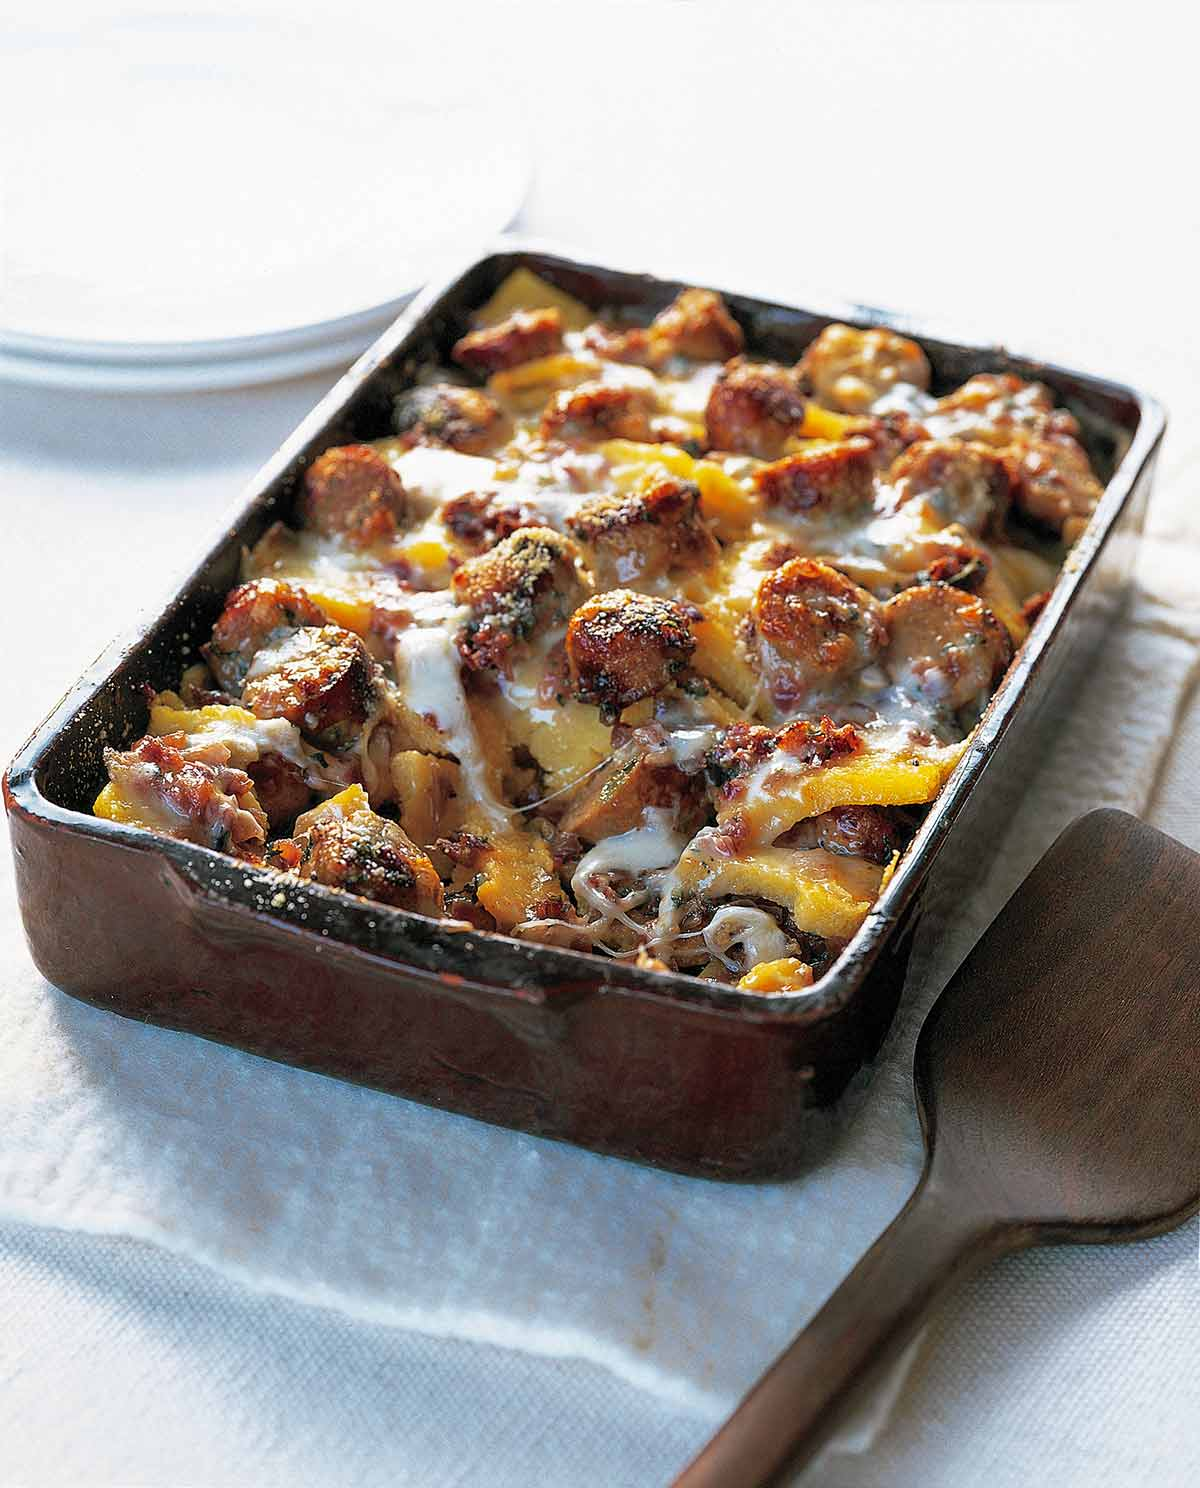 A rectangular casserole dish filled with baked polenta with sausage and cheese.